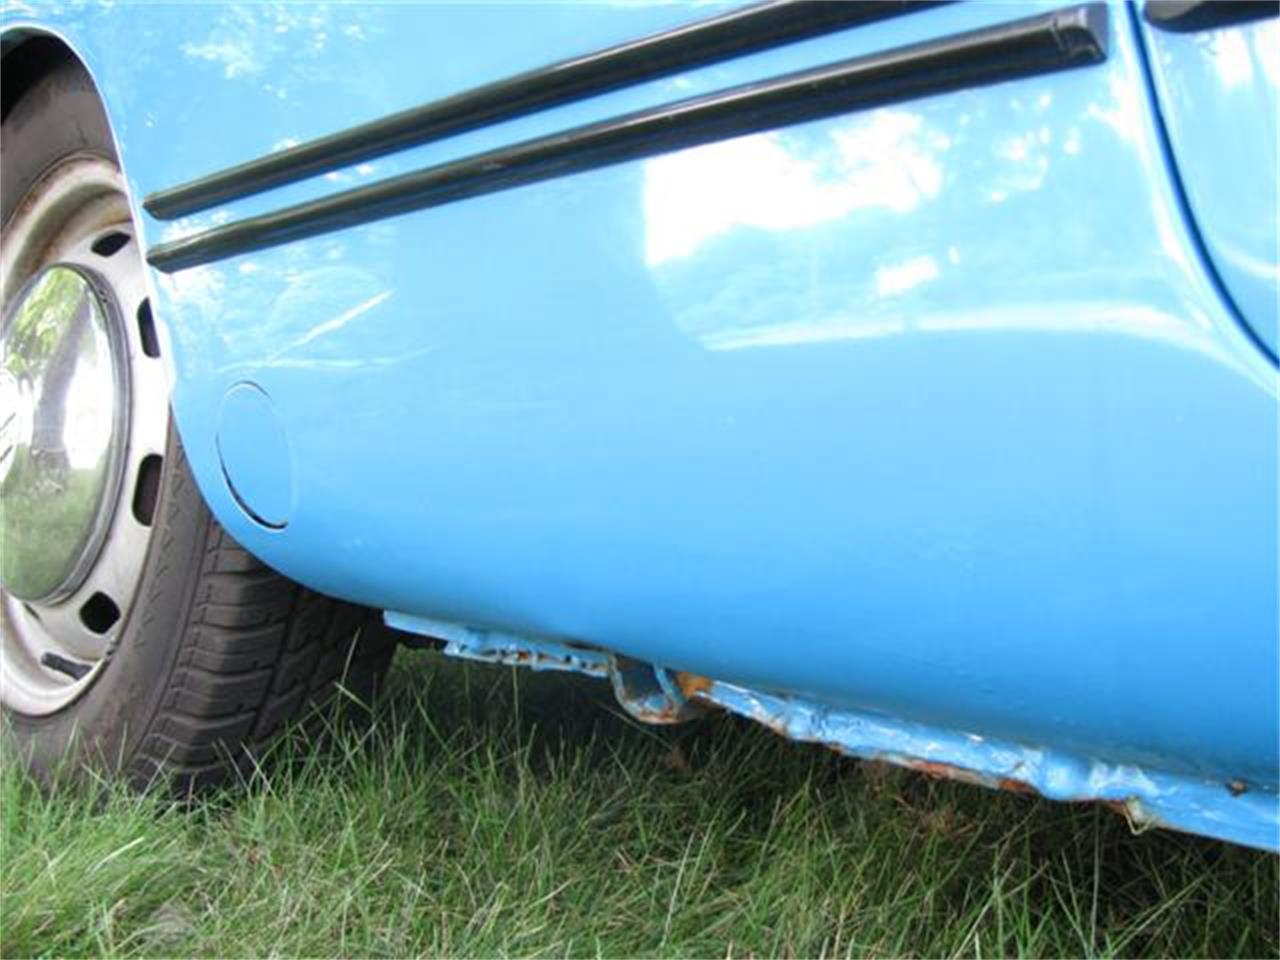 Large Picture of 1973 Volkswagen Karmann Ghia located in Florida - $12,500.00 Offered by a Private Seller - EV9I